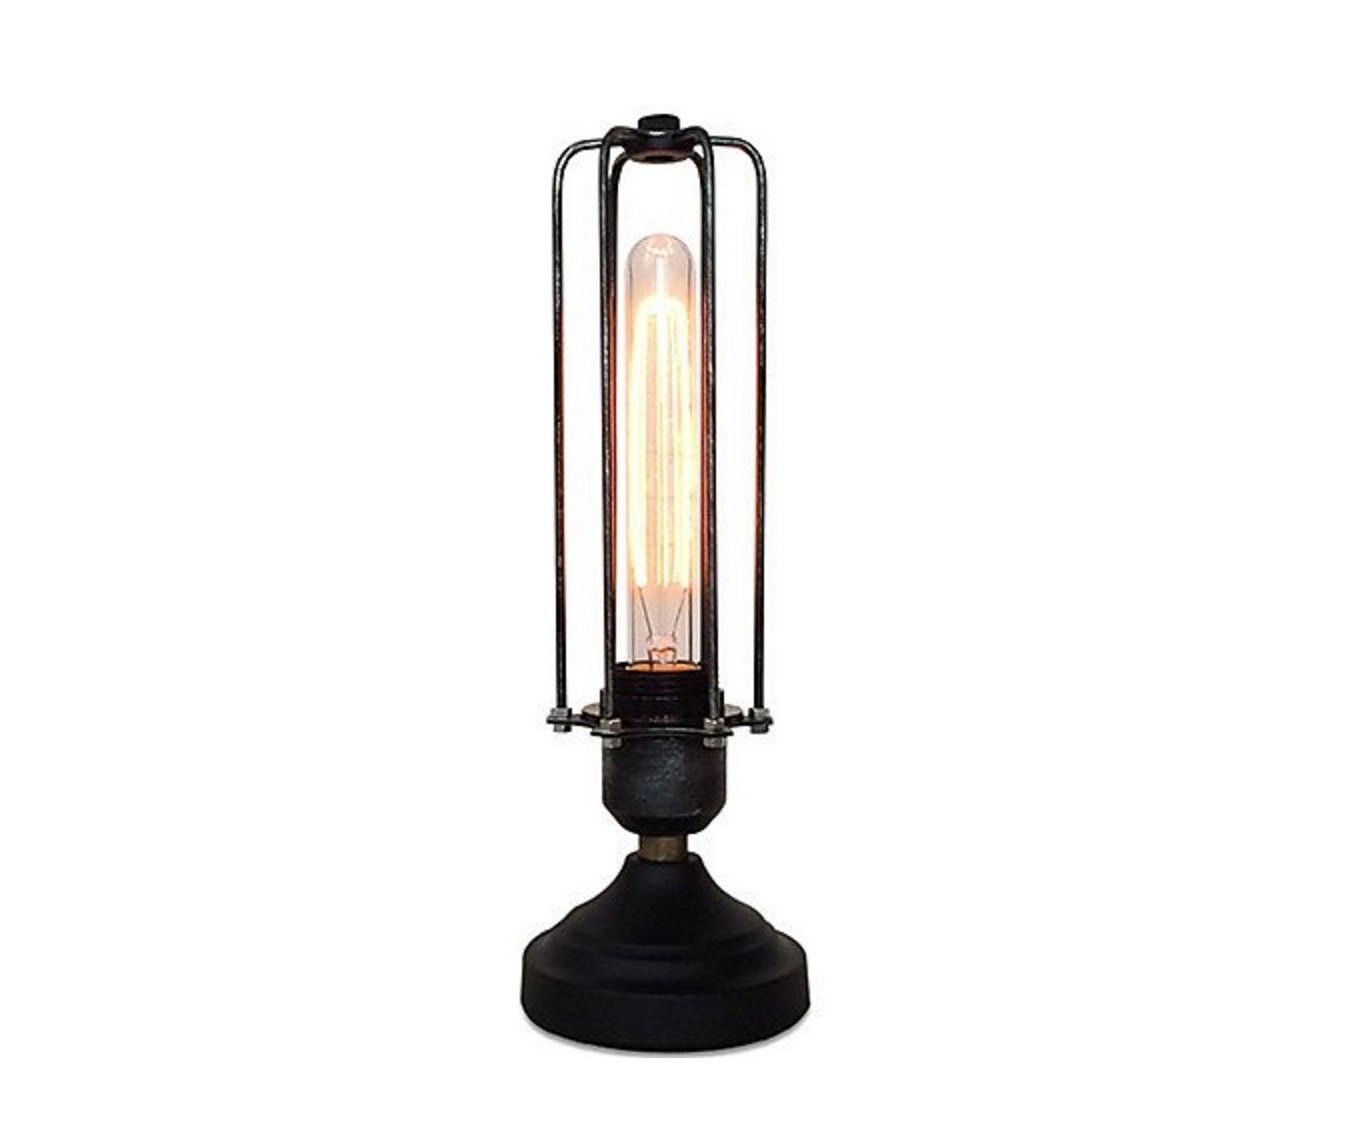 Table lamp vintage style - Vintage Cage Table Lamp Bedside Lamp Dimmable Lamp